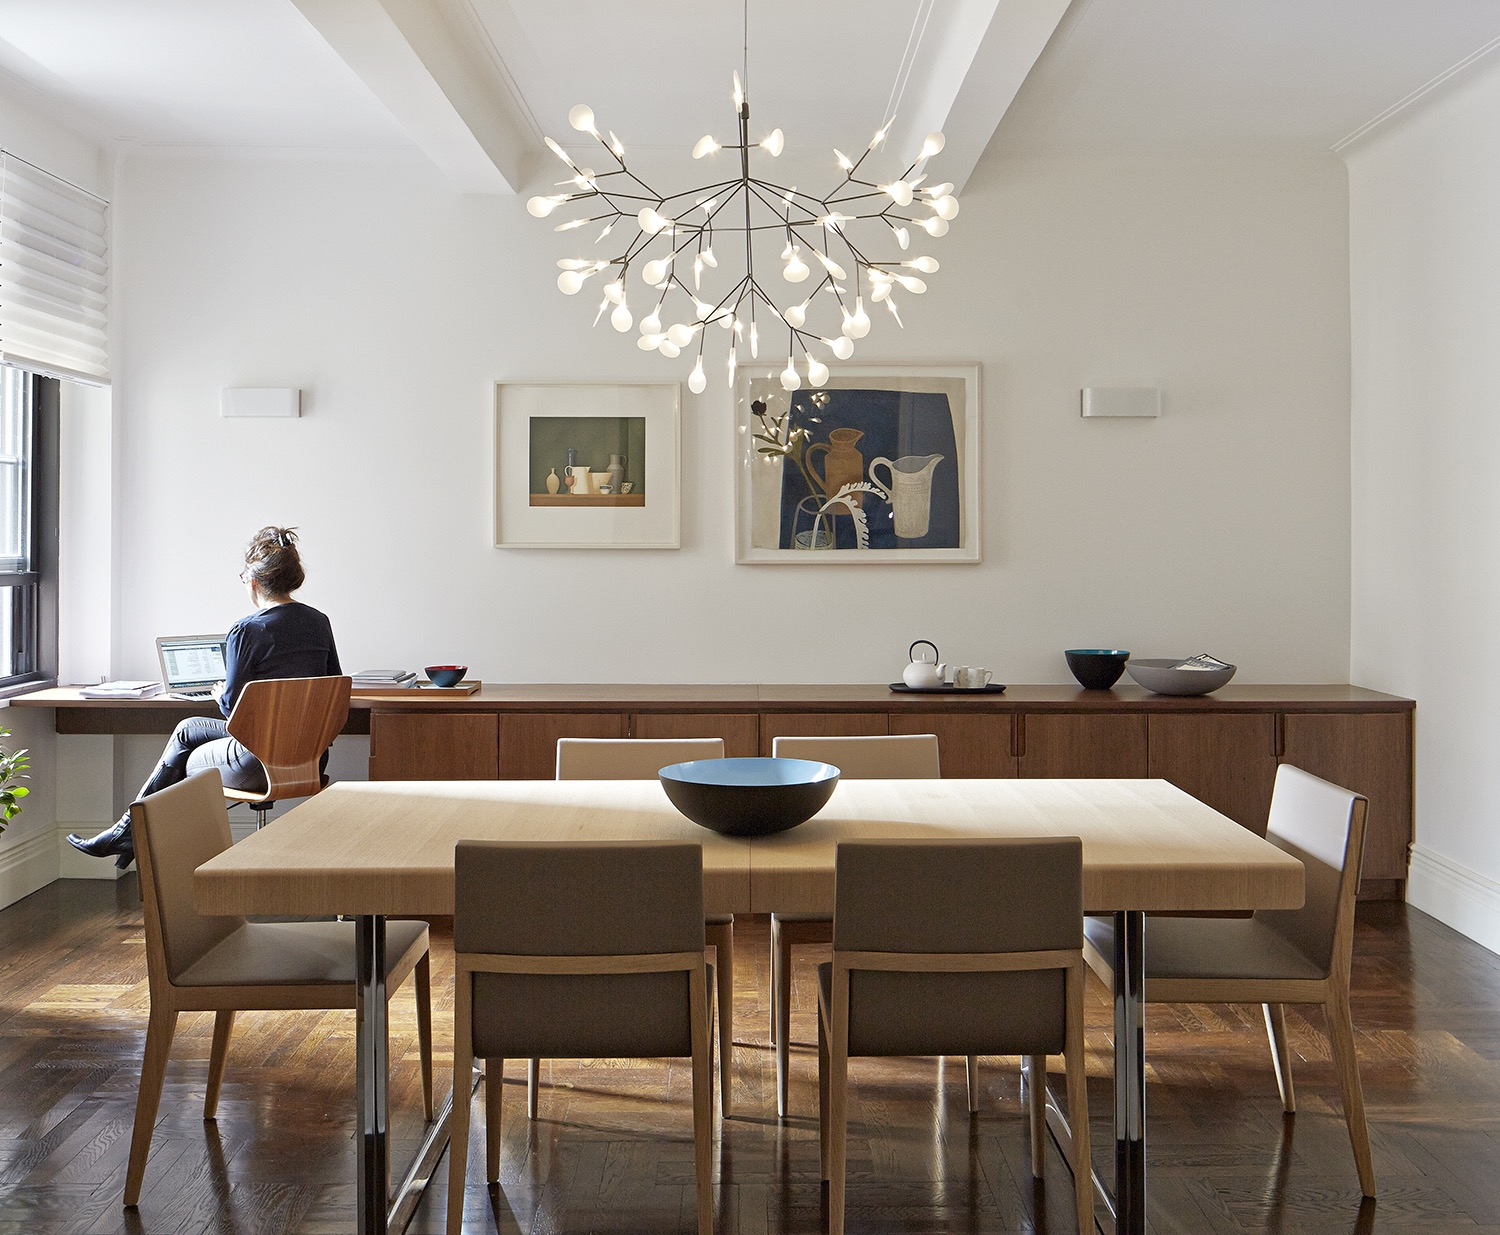 Stunning Modern Dining Room With Contemporary Lighting (Image 30 of 30)